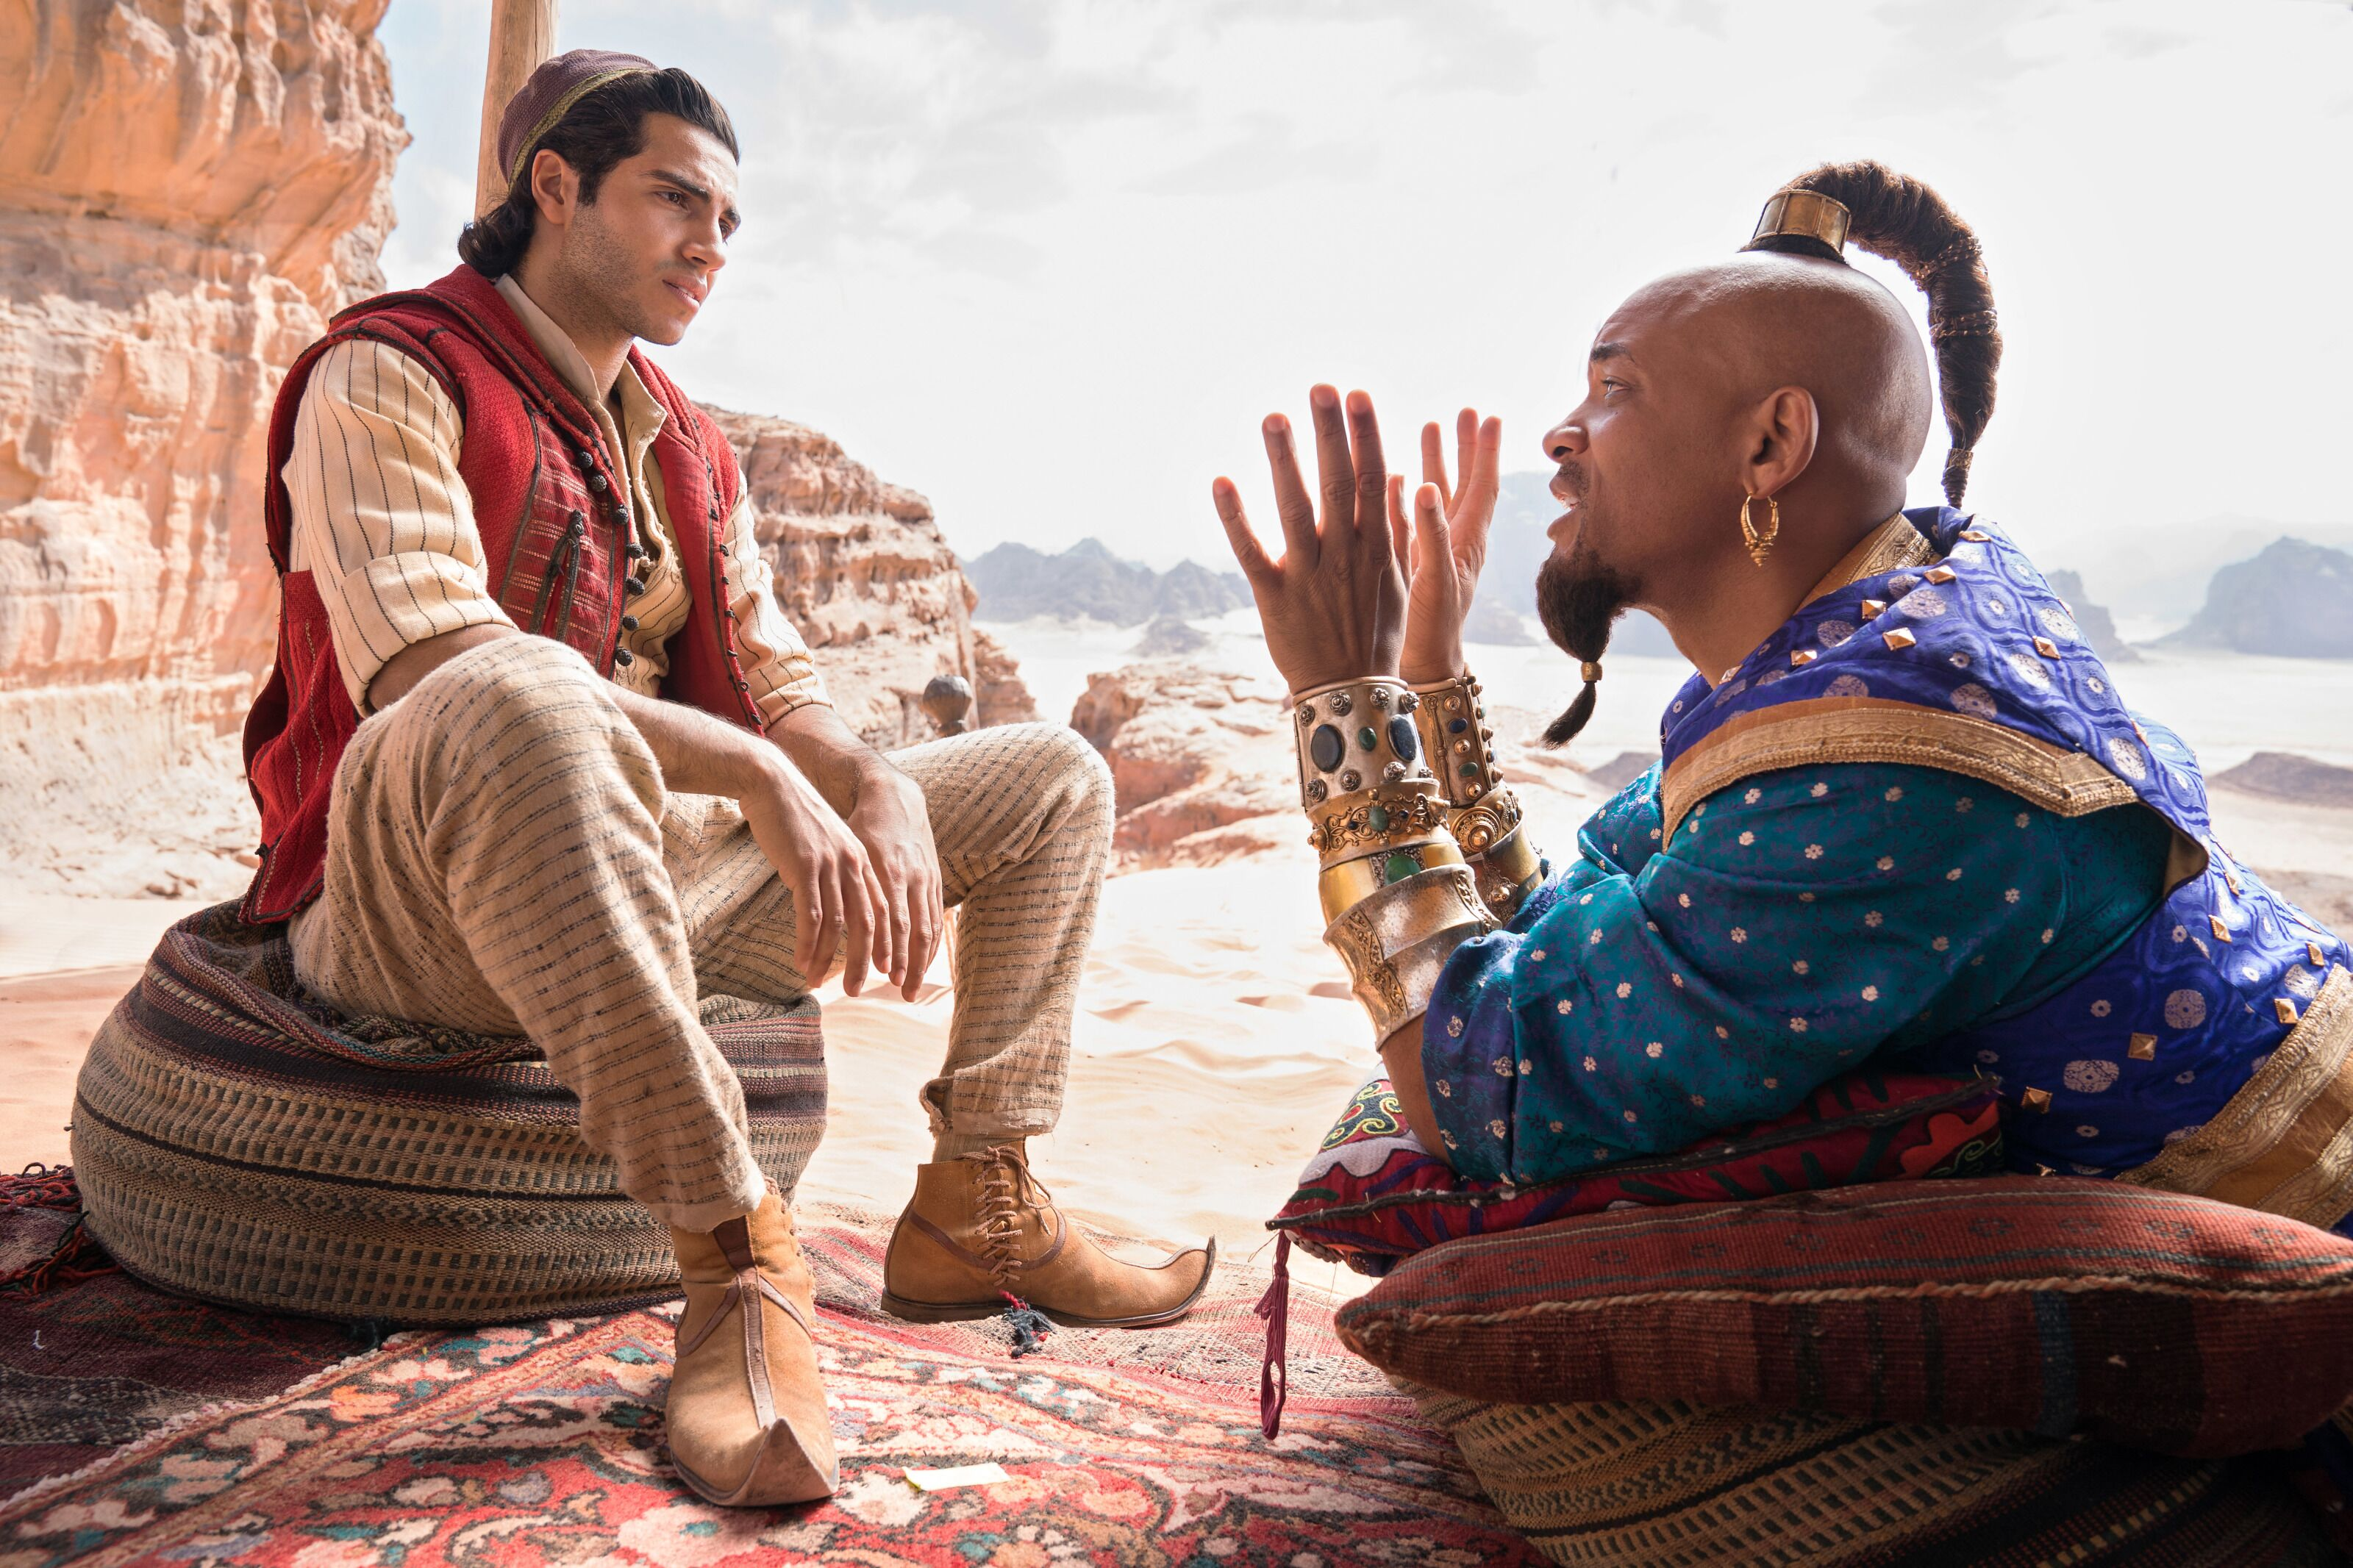 Aladdin is not quite a whole new world, but it'll do